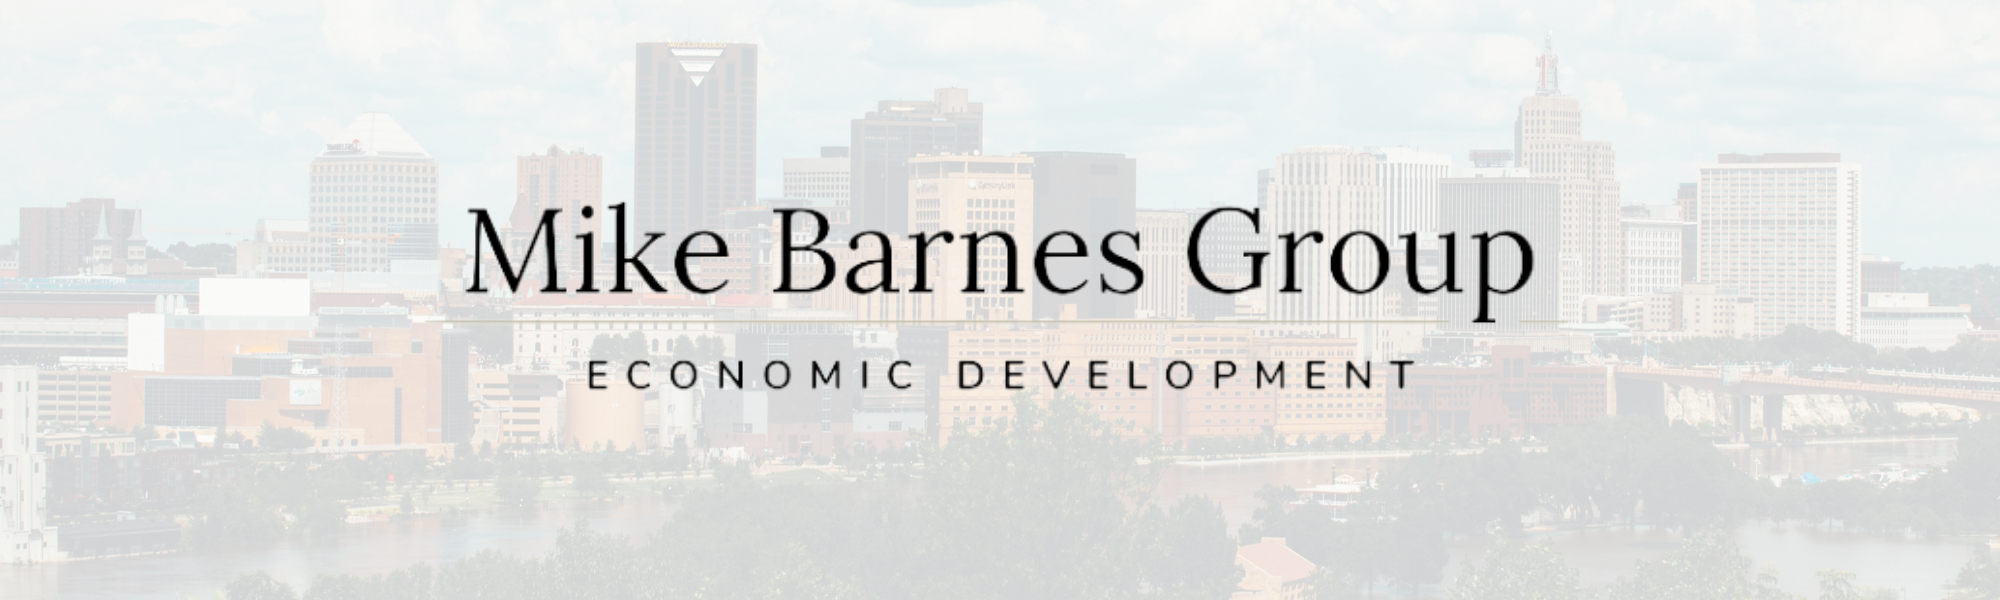 Mike Barnes Group merges with marketing agency; expands services